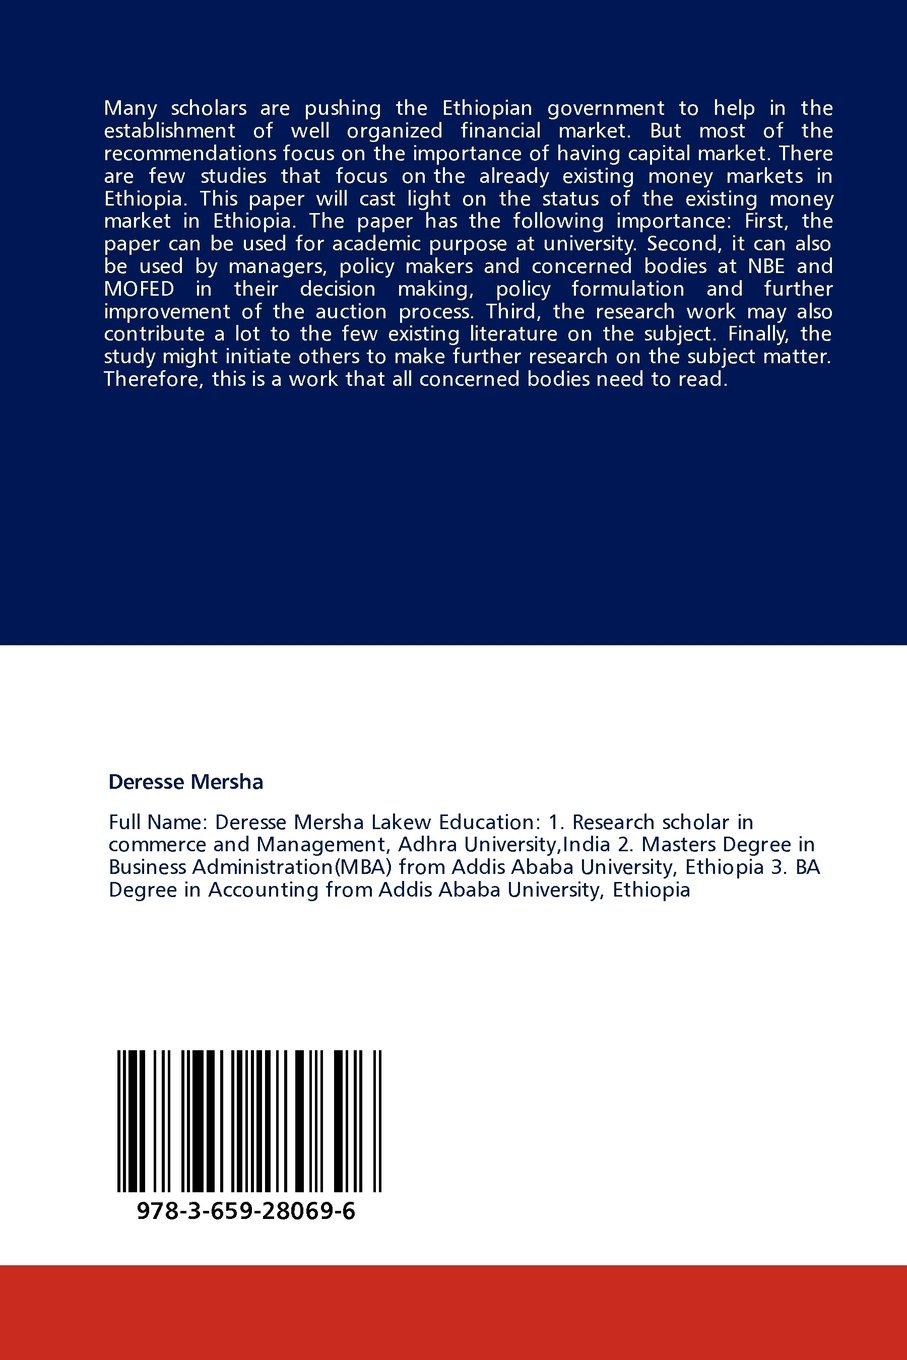 Assessment of Money Markets in Ethiopia: An Investigation of